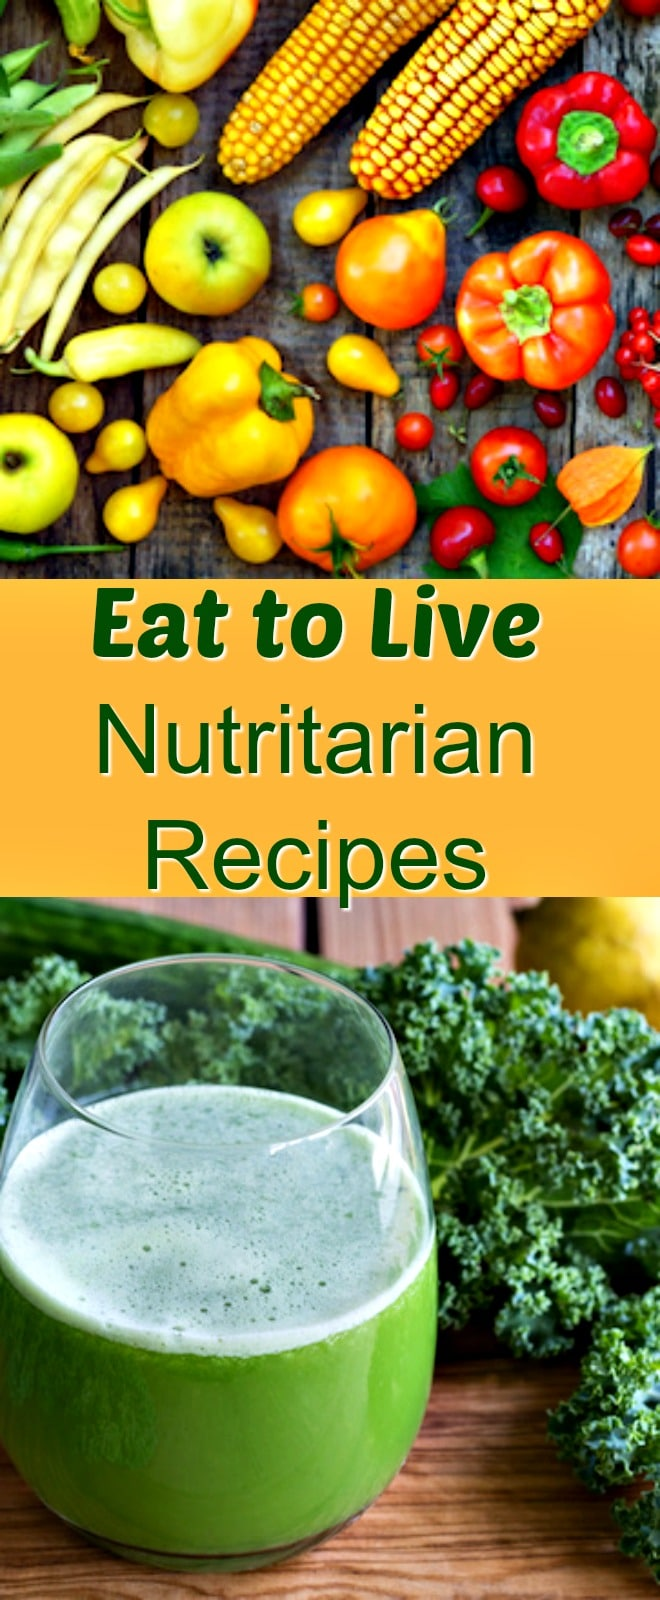 The best Eat to Live recipes that support a nutritarian diet. Oil-free, Dr. Fuhrman, nutrient-dense, plant-based healthy recipes.